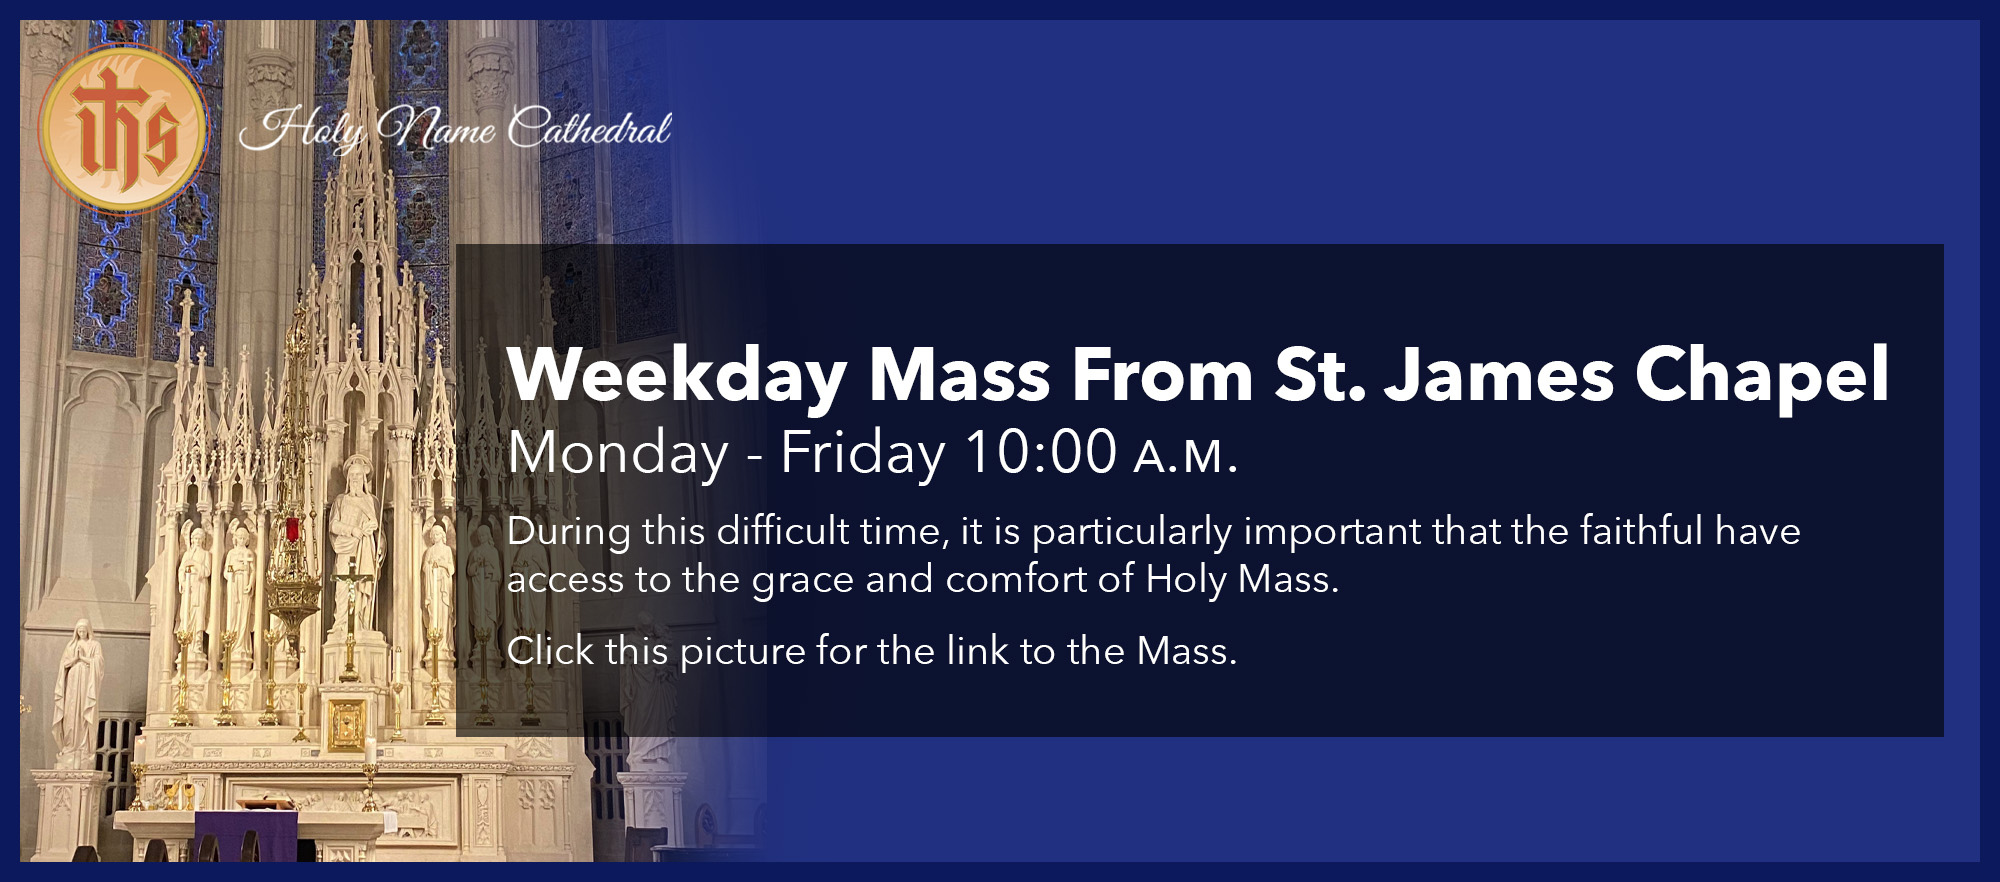 Weekday Mass From St. James Chapel